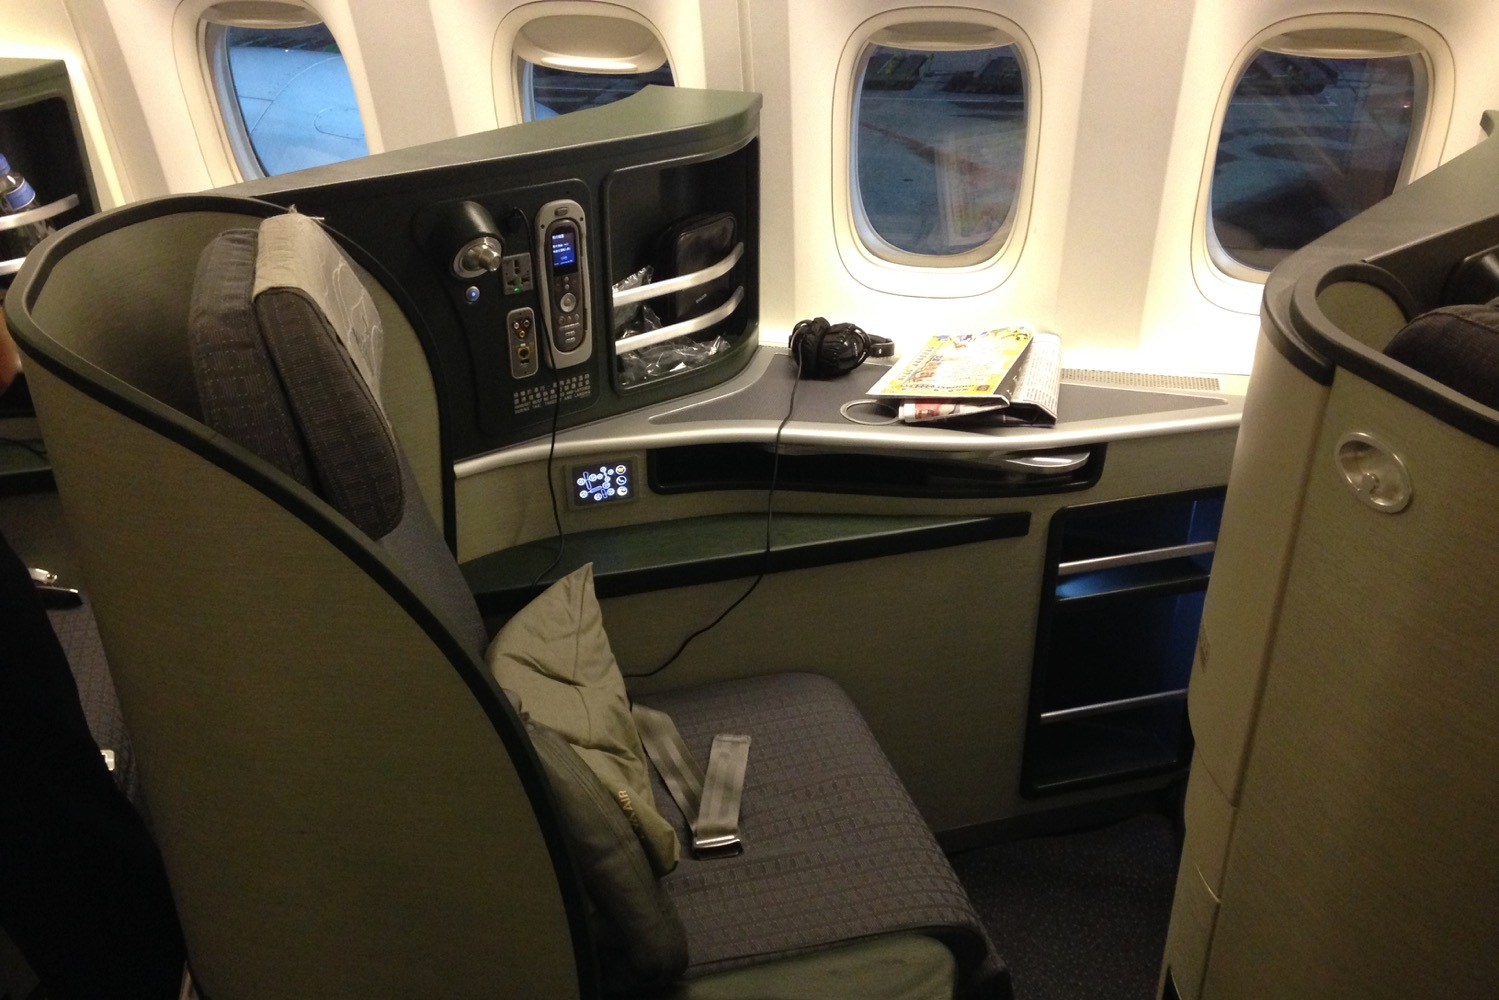 Redeem 75,000 Aeroplan miles for a business class flight to Asia